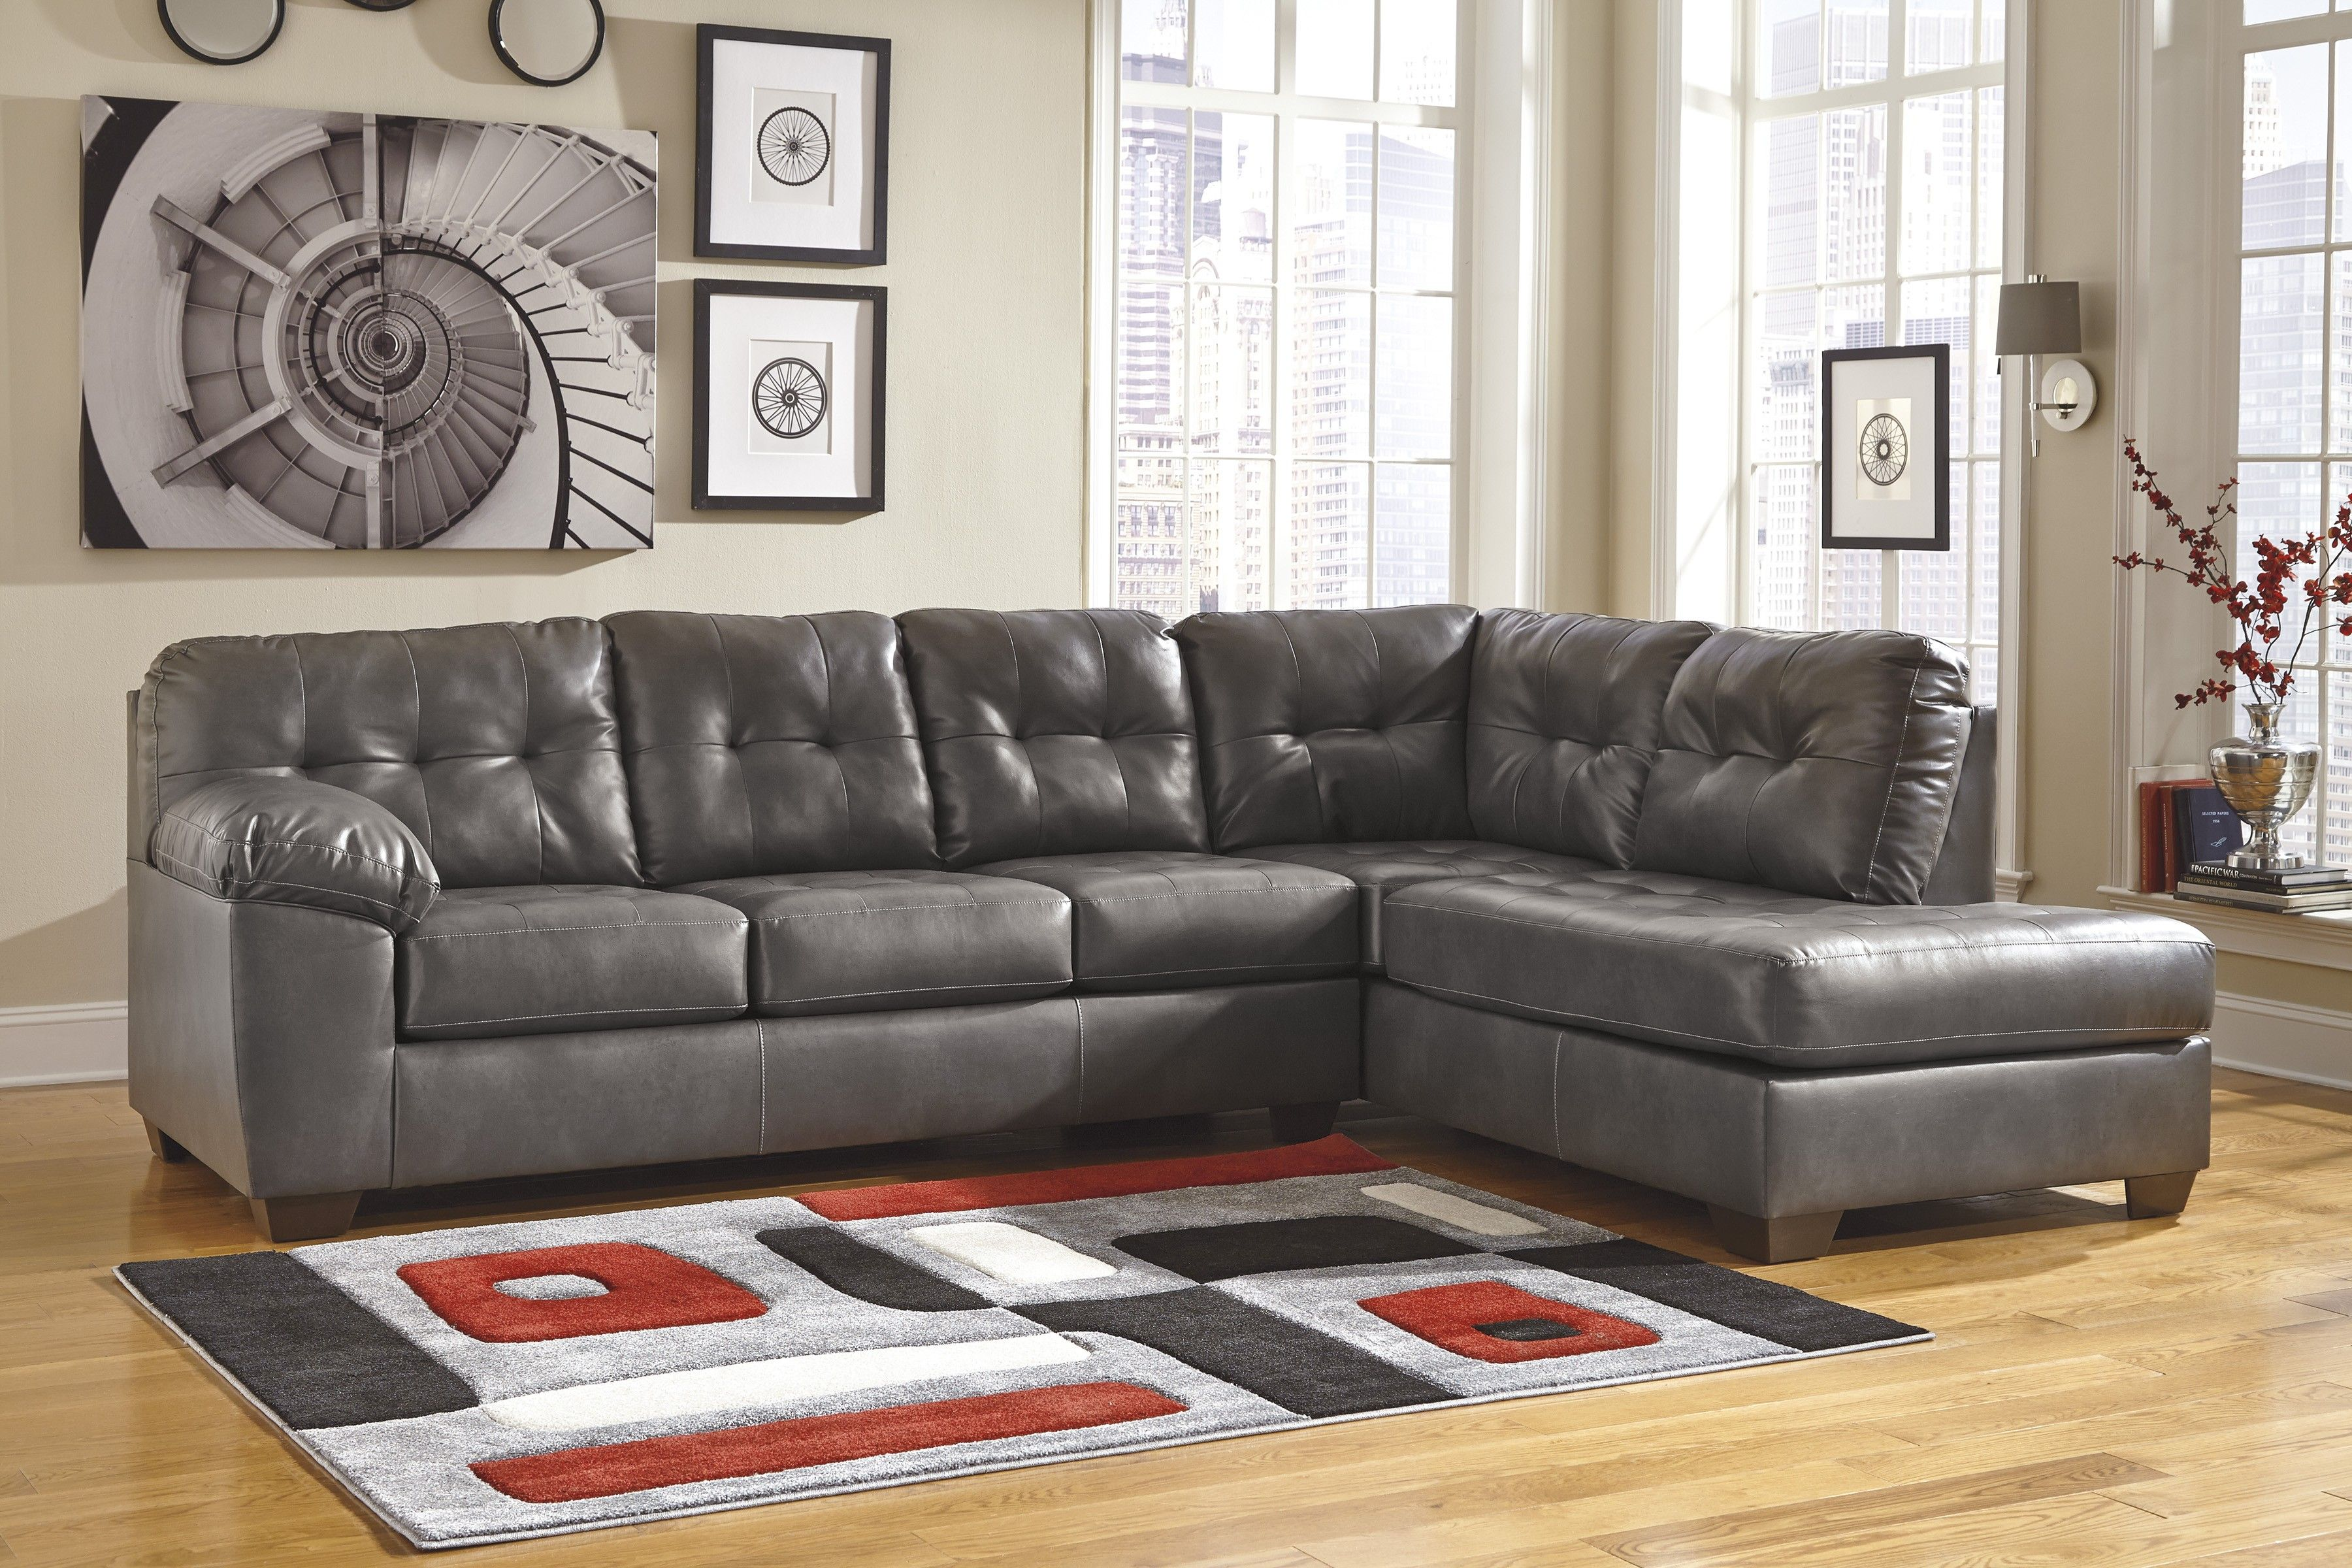 Love Light Colored Leather Sofas Like This Gray One